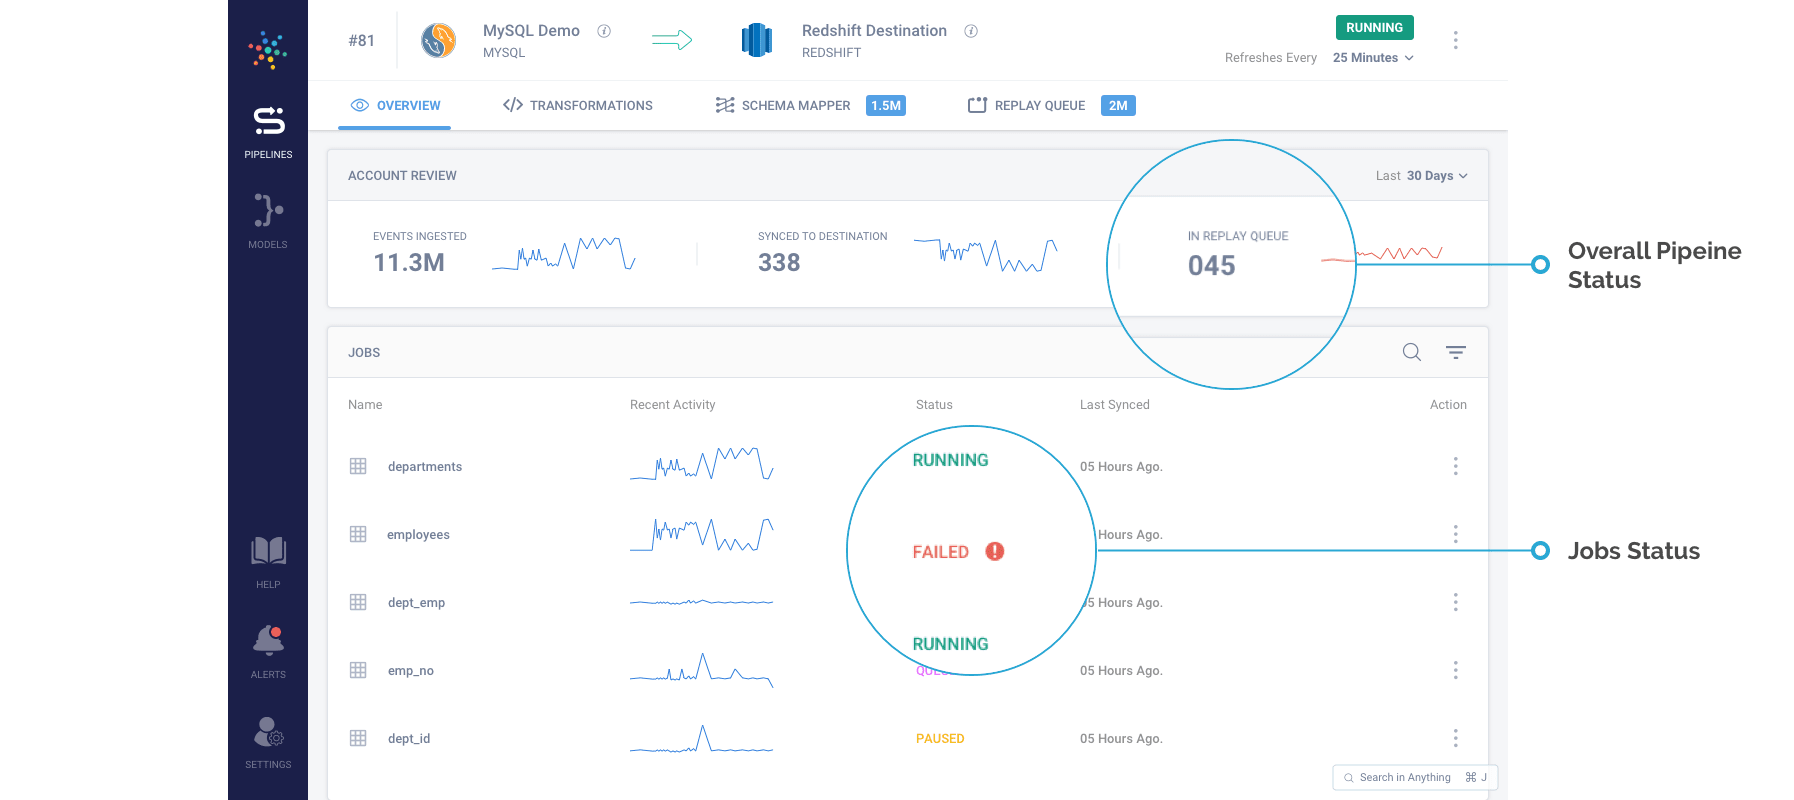 Overview of Pipelines on Hevo